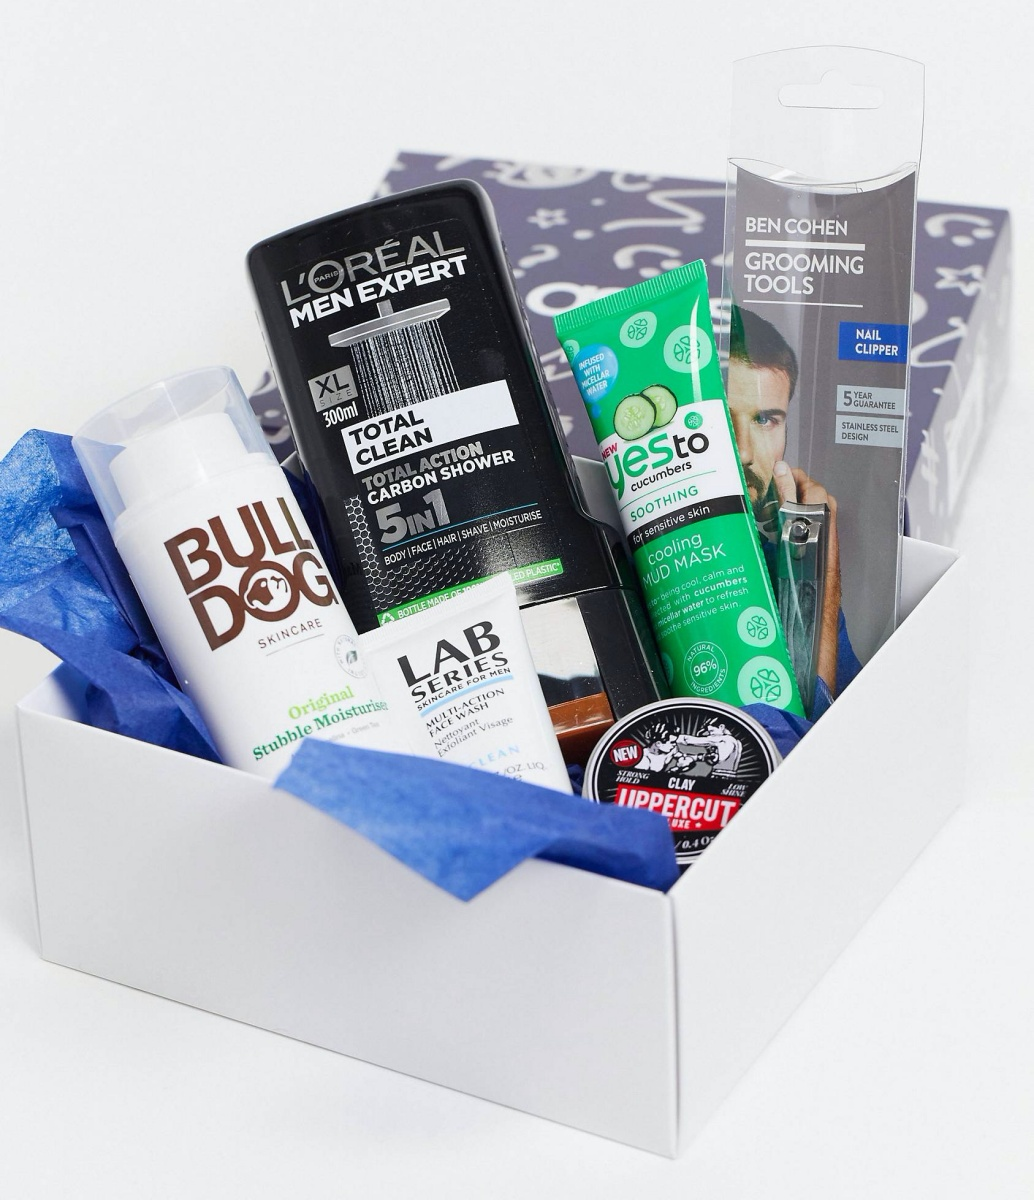 1 - ASOS Beauty Boxes For Valentine's Day